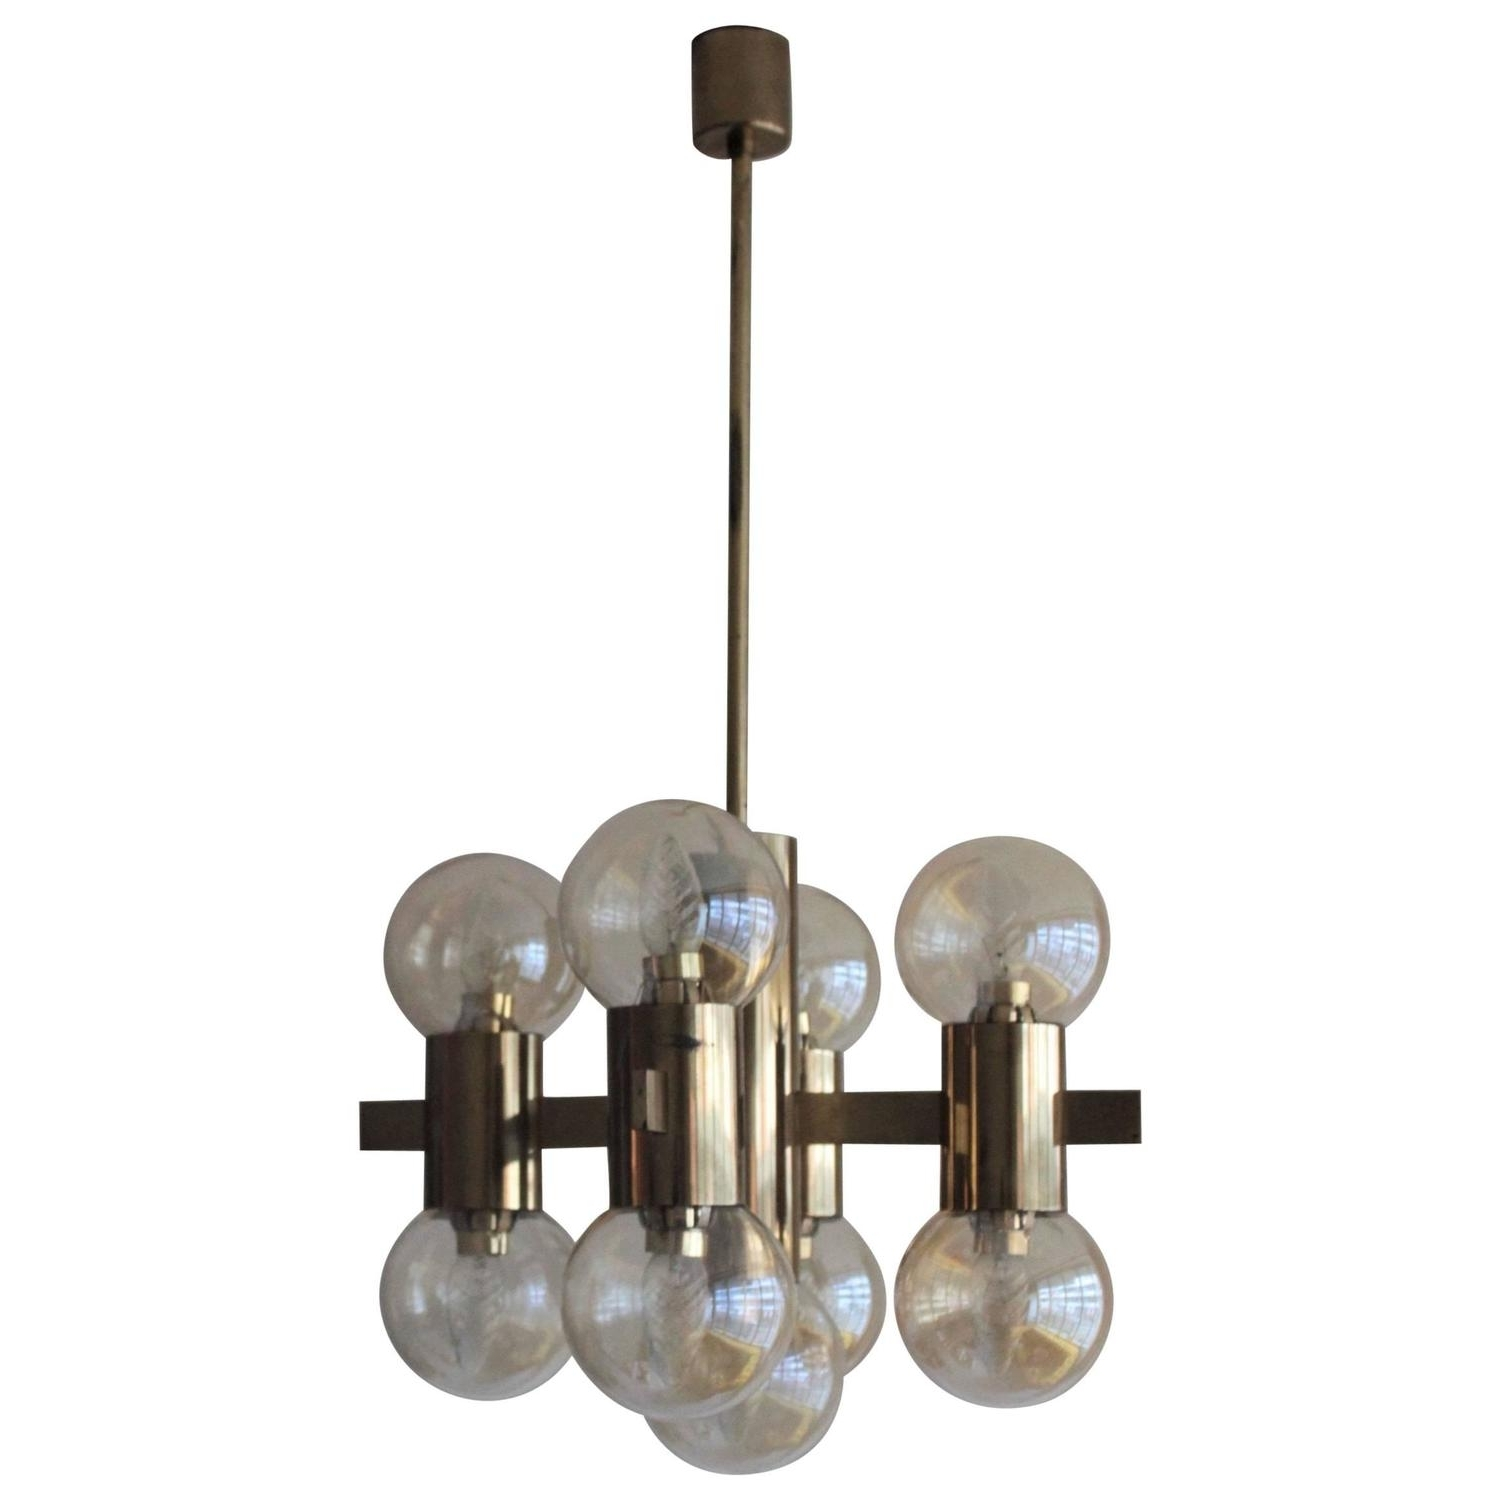 Italian Brass Smoked Glass Chandelier, 1970S For Sale At 1Stdibs Within Most Recent Smoked Glass Chandelier (View 3 of 15)